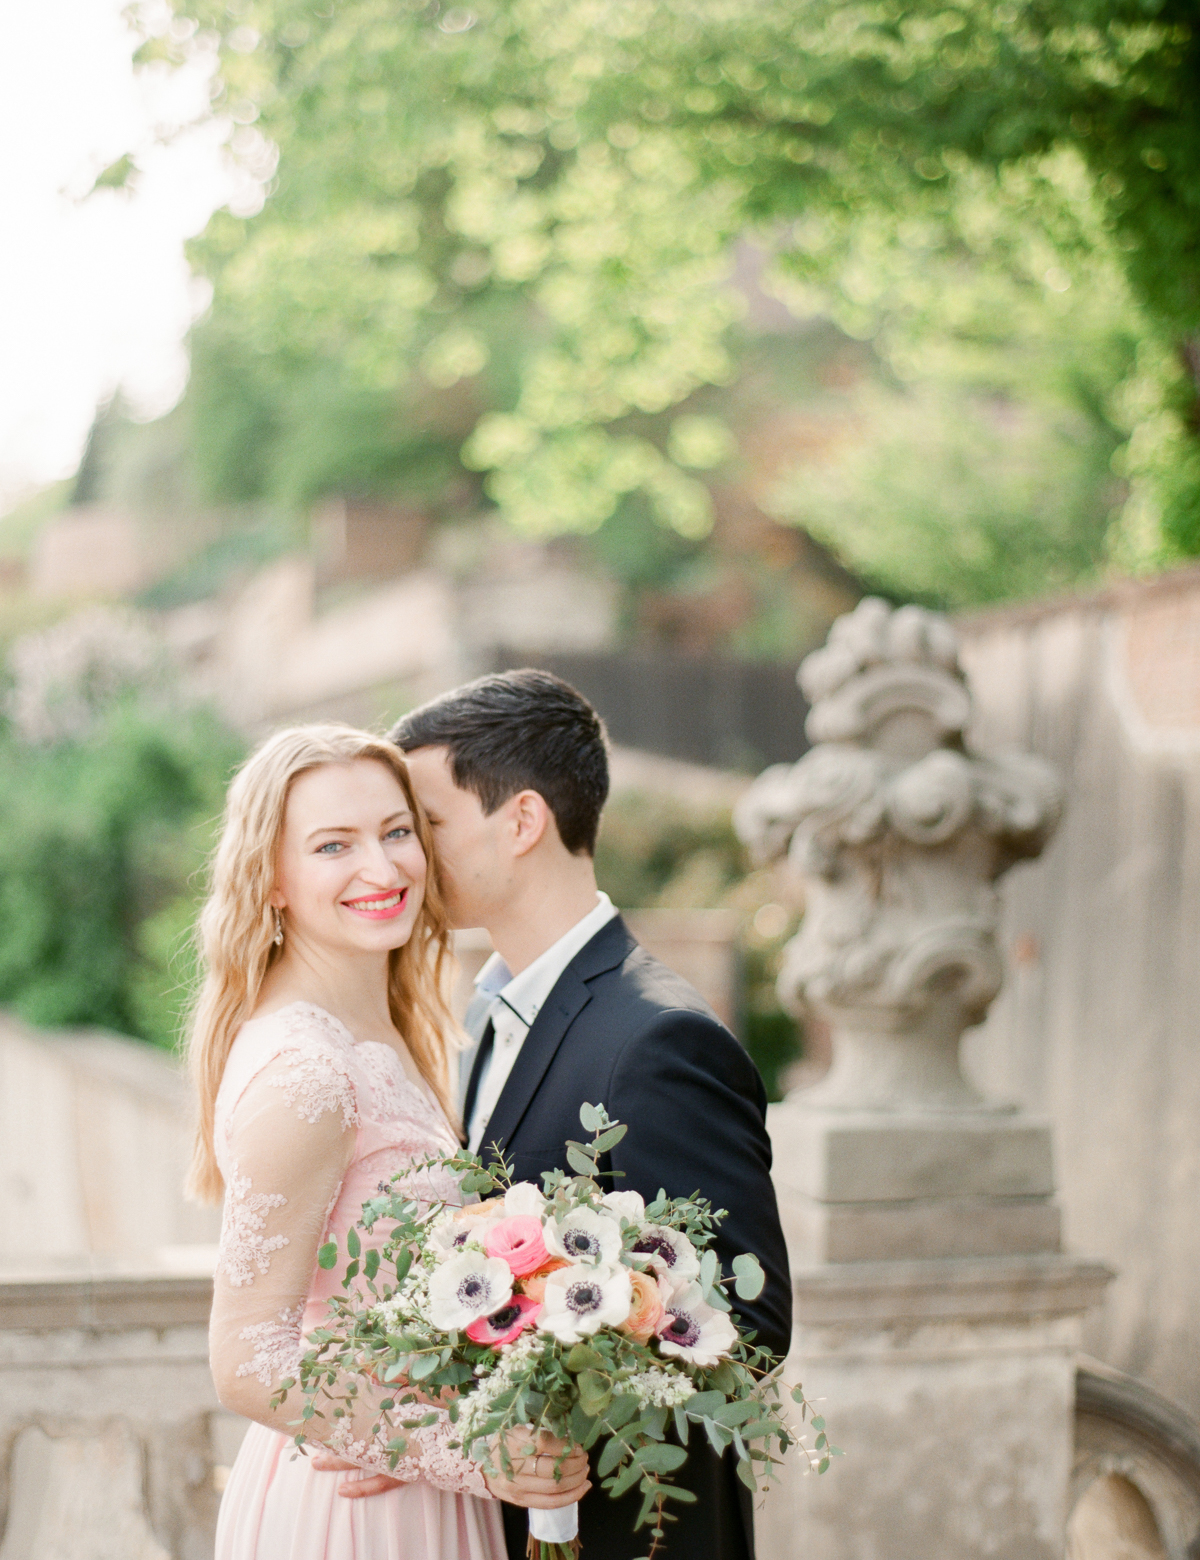 Tuscany Lake Como film wedding photographer Nikol Bodnarova Photography